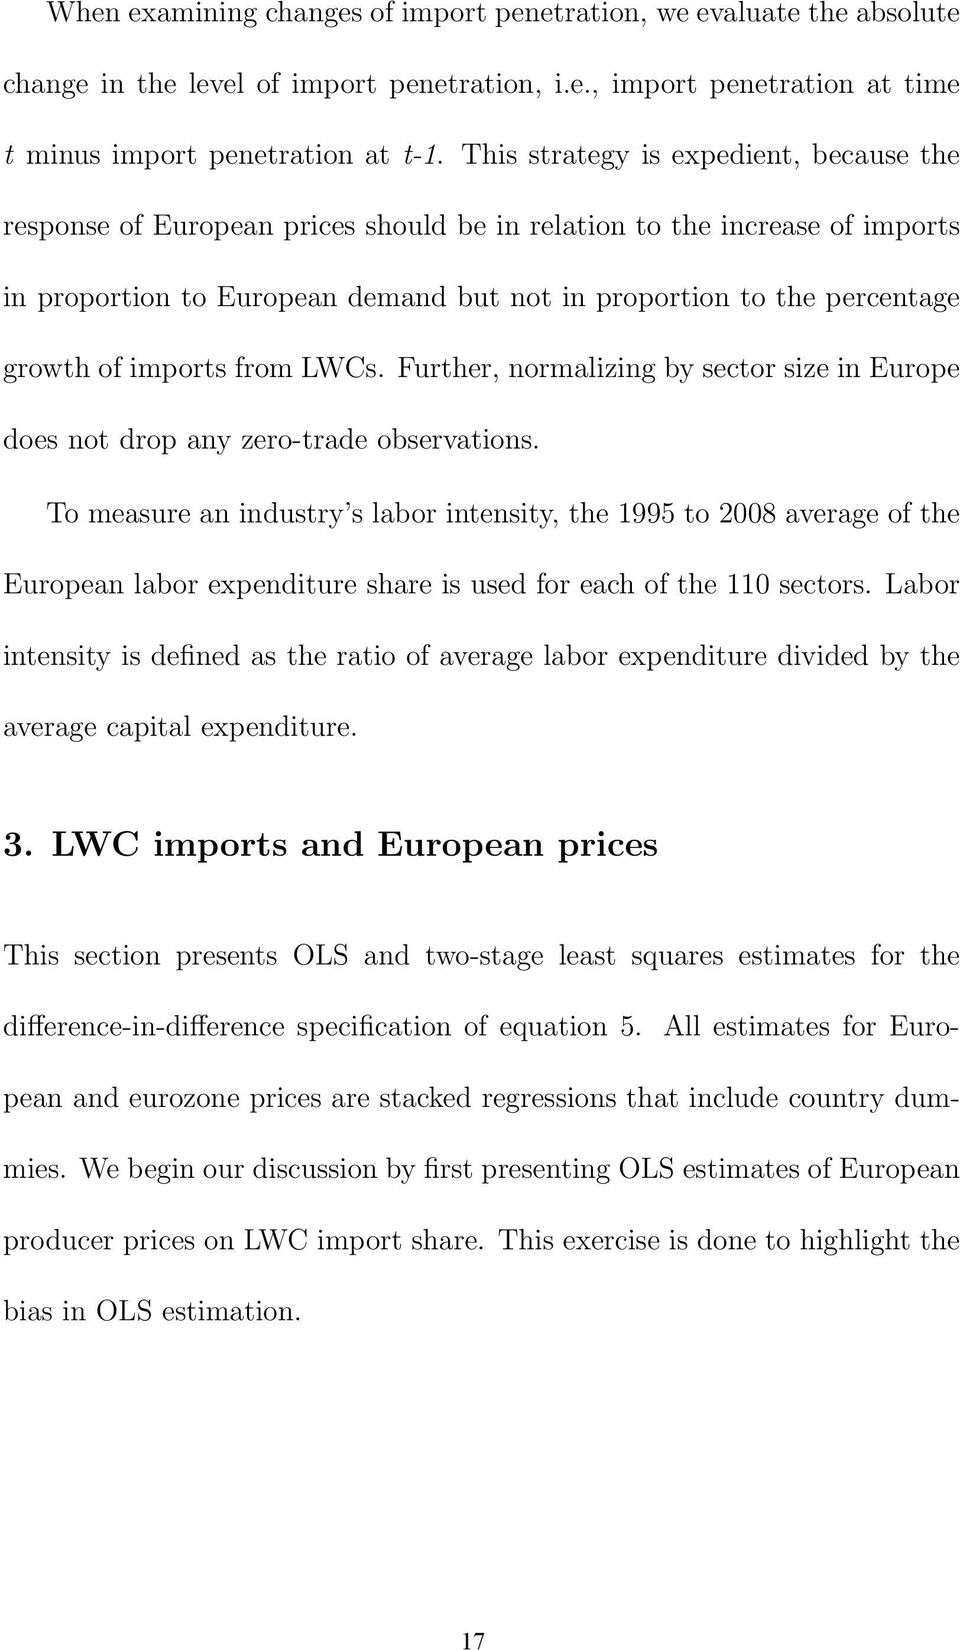 imports from LWCs. Further, normalizing by sector size in Europe does not drop any zero-trade observations.